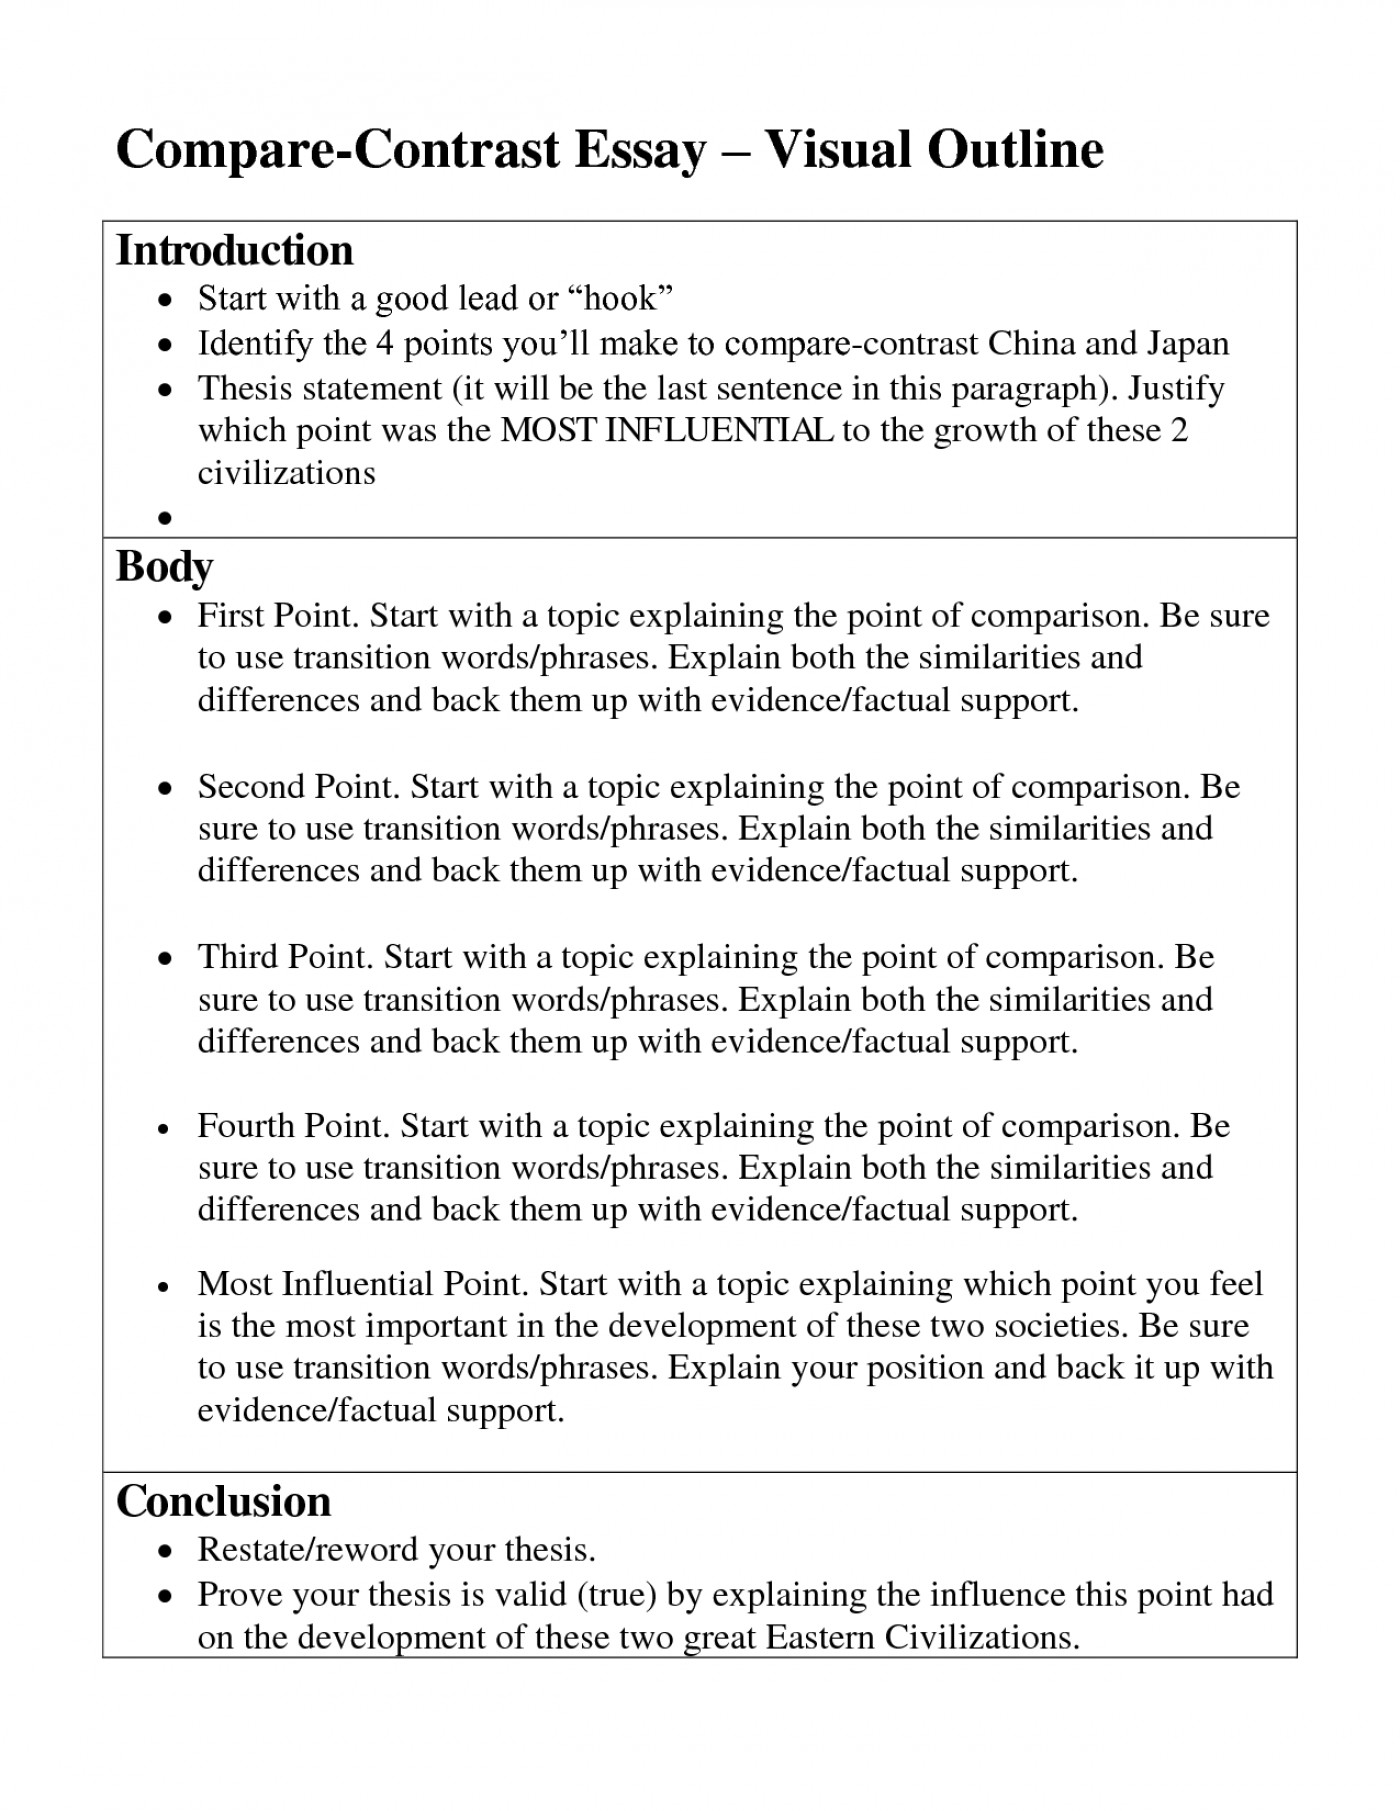 009 Good Compare And Contrast Essay Unbelievable The Great Gatsby Tom Examples Middle School Movie Book 1400